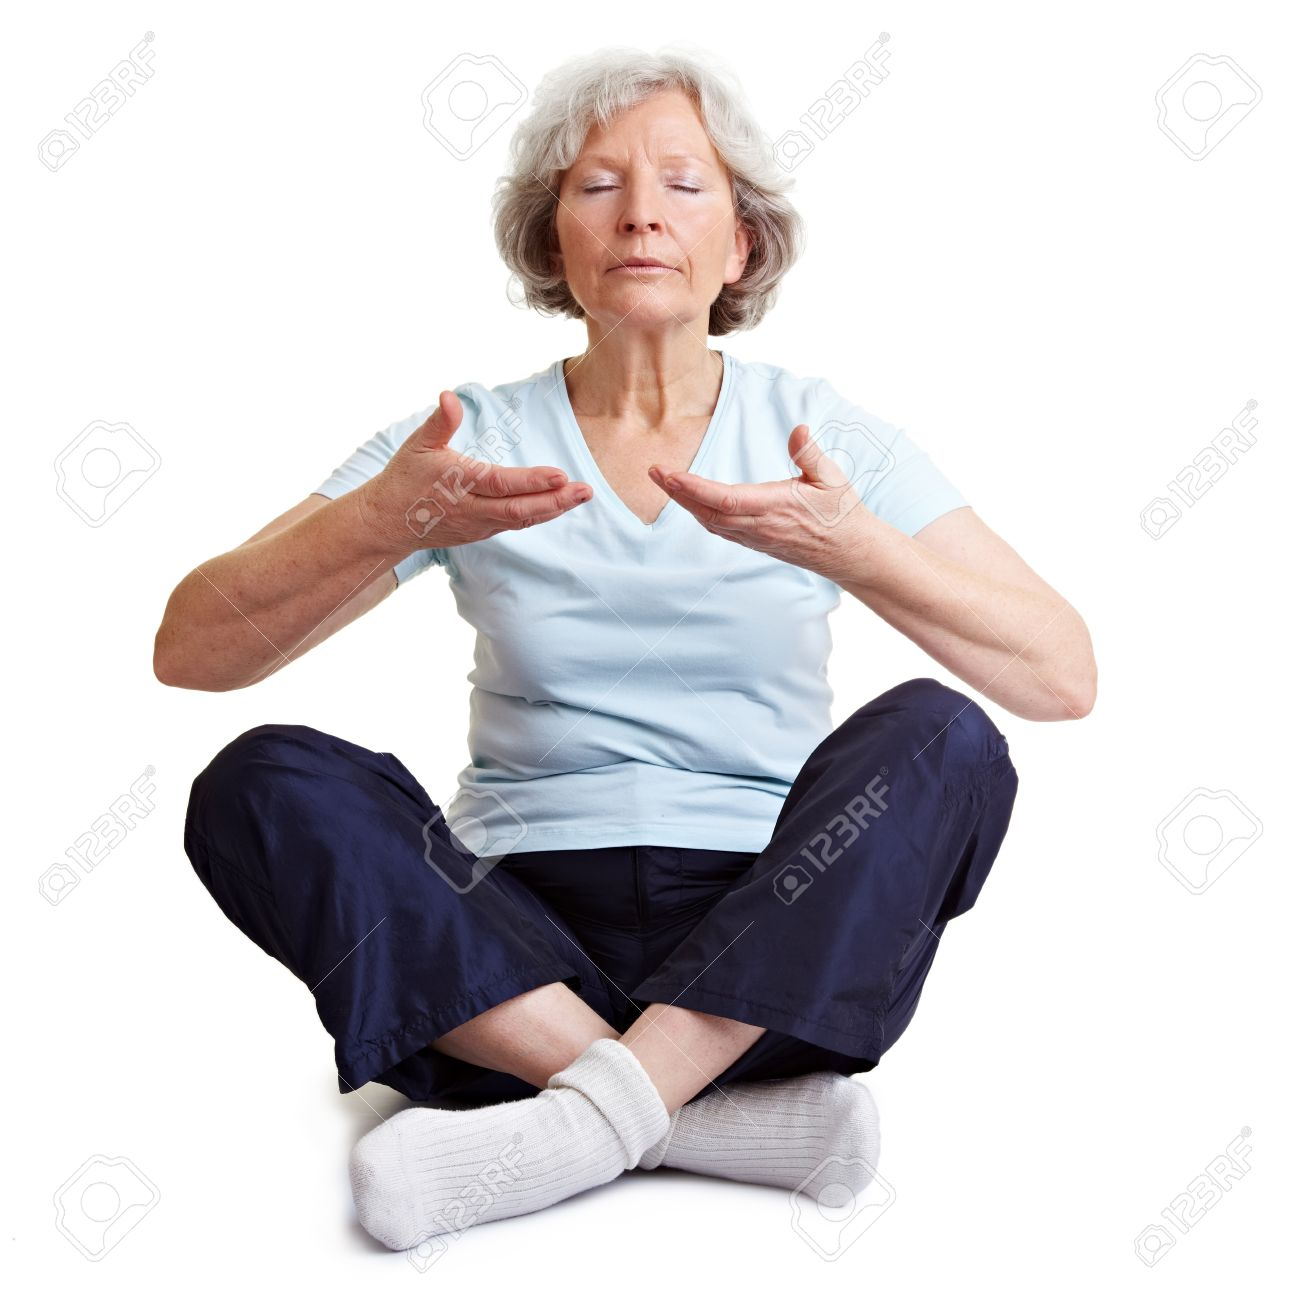 Old senior woman meditating and relaxing with breathing exercises Stock Photo - 9108629